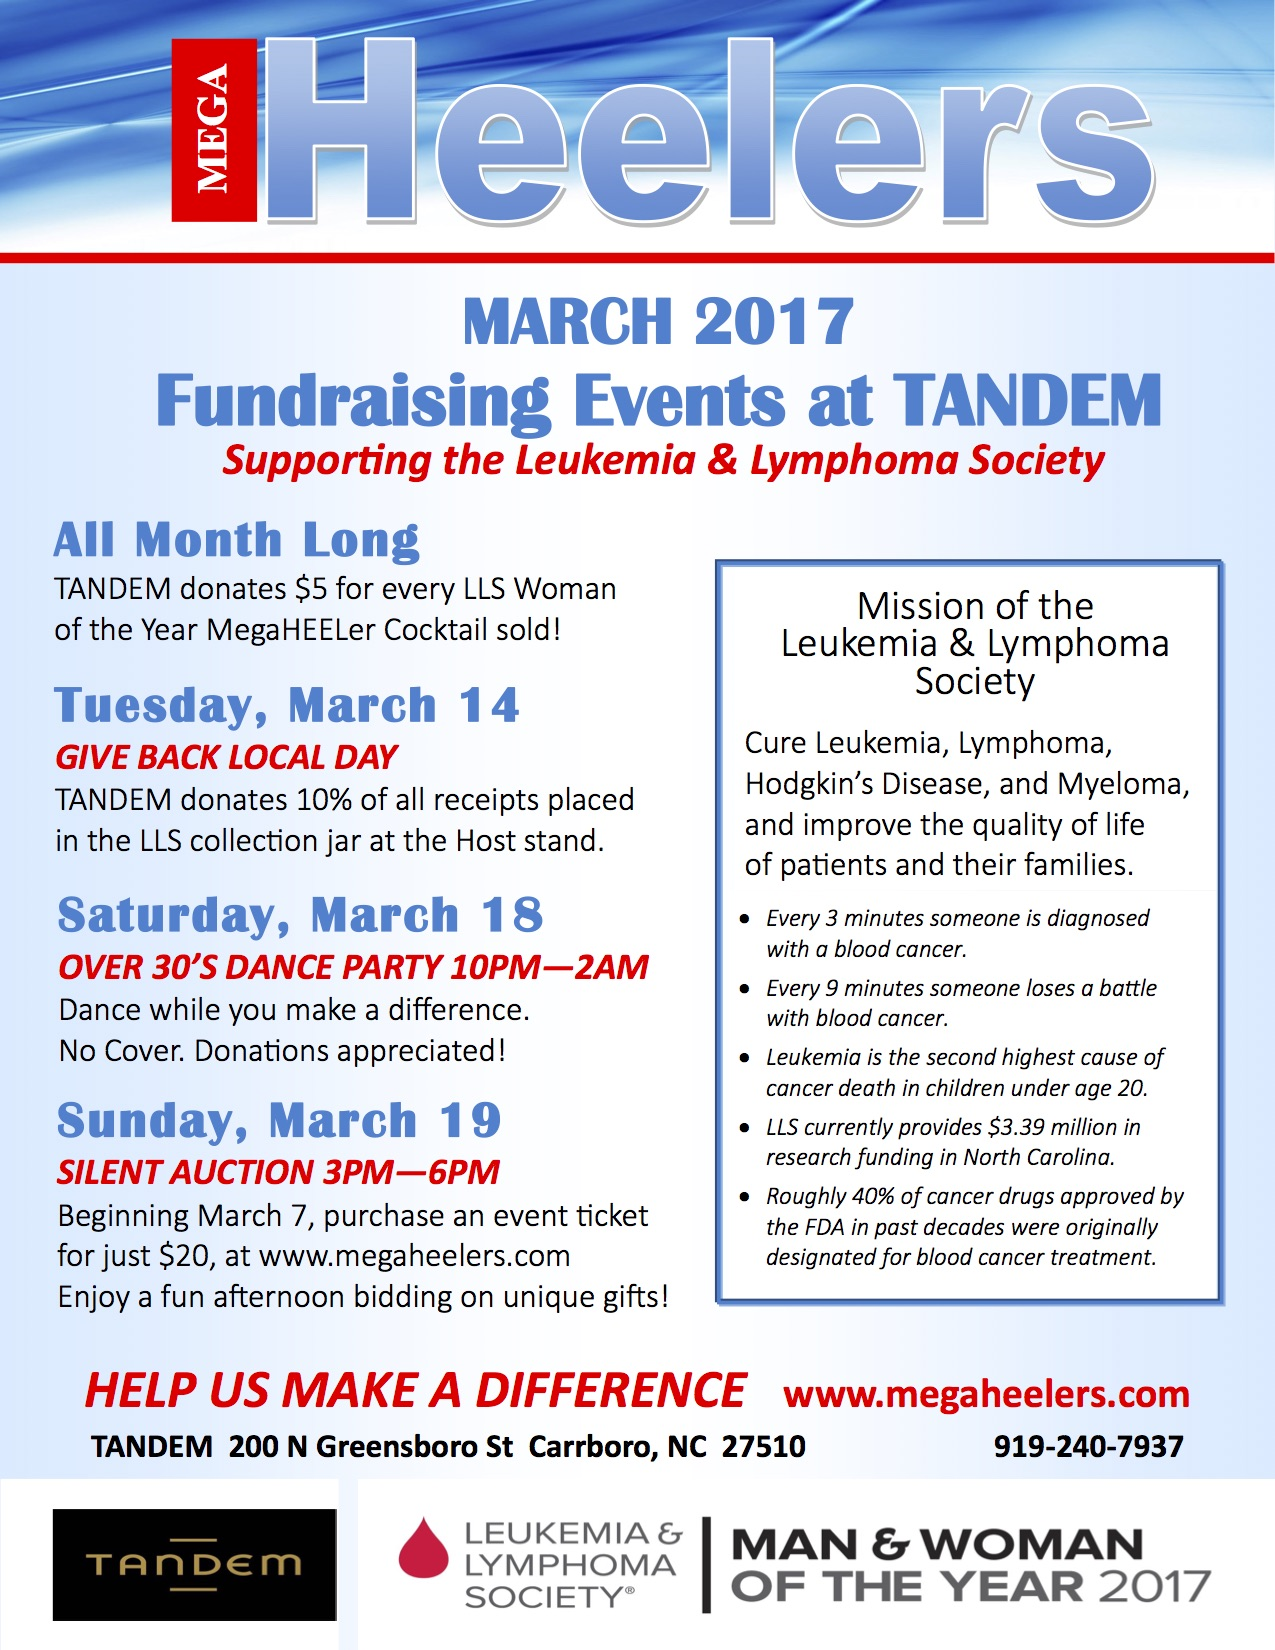 2017 Megaheelers TANDEM InvitationREV2.27.17 PM copy